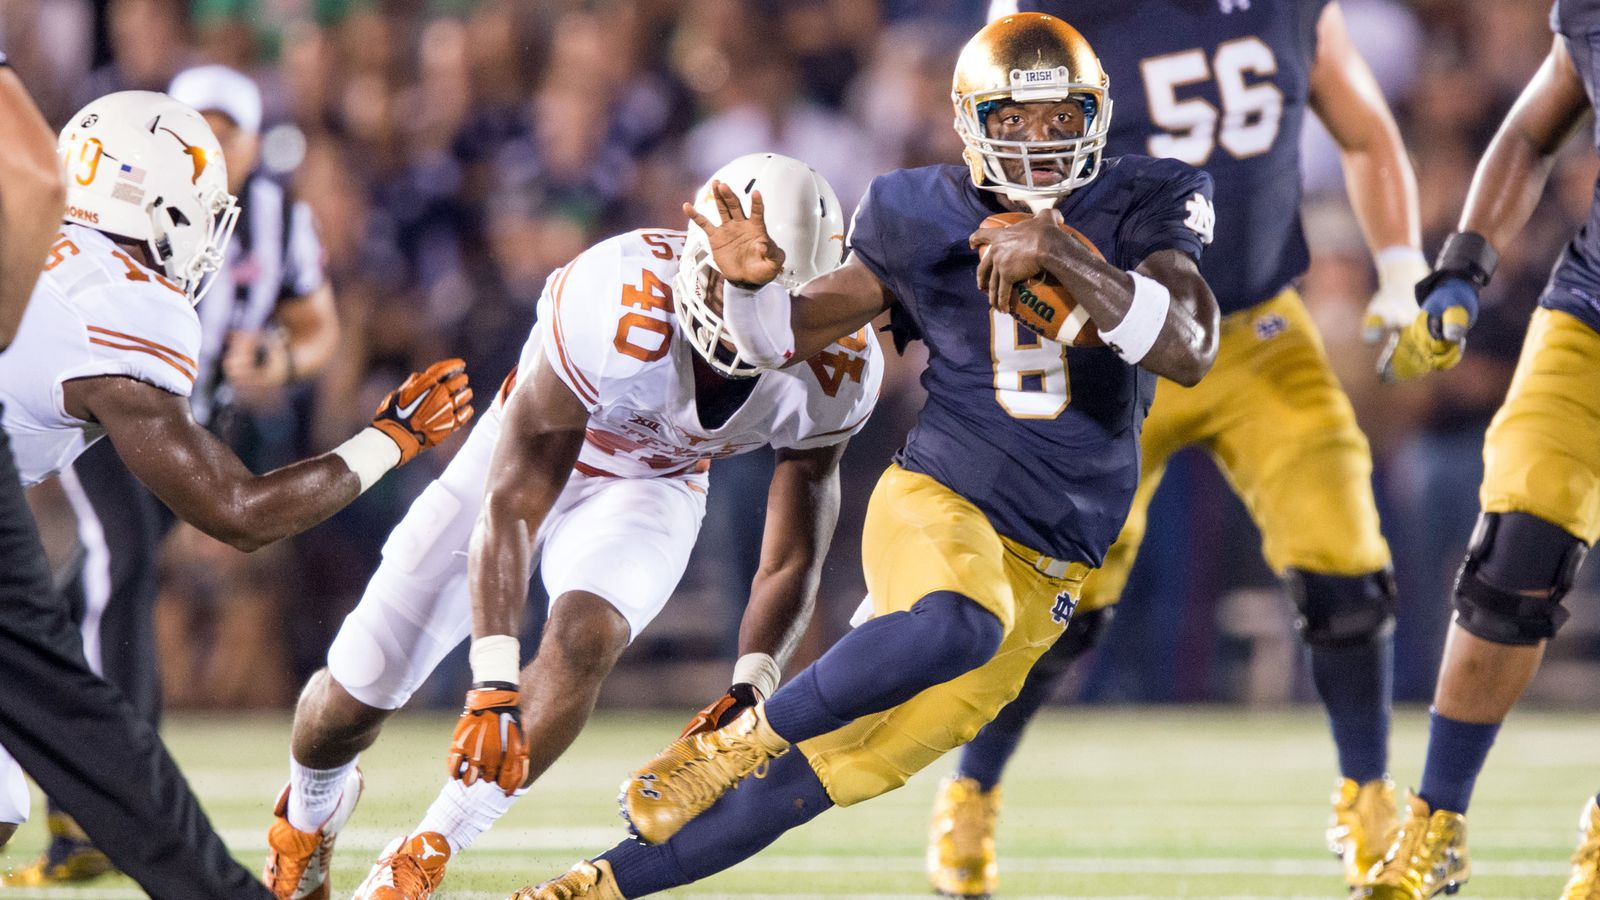 notre dame game today score college football latest lines